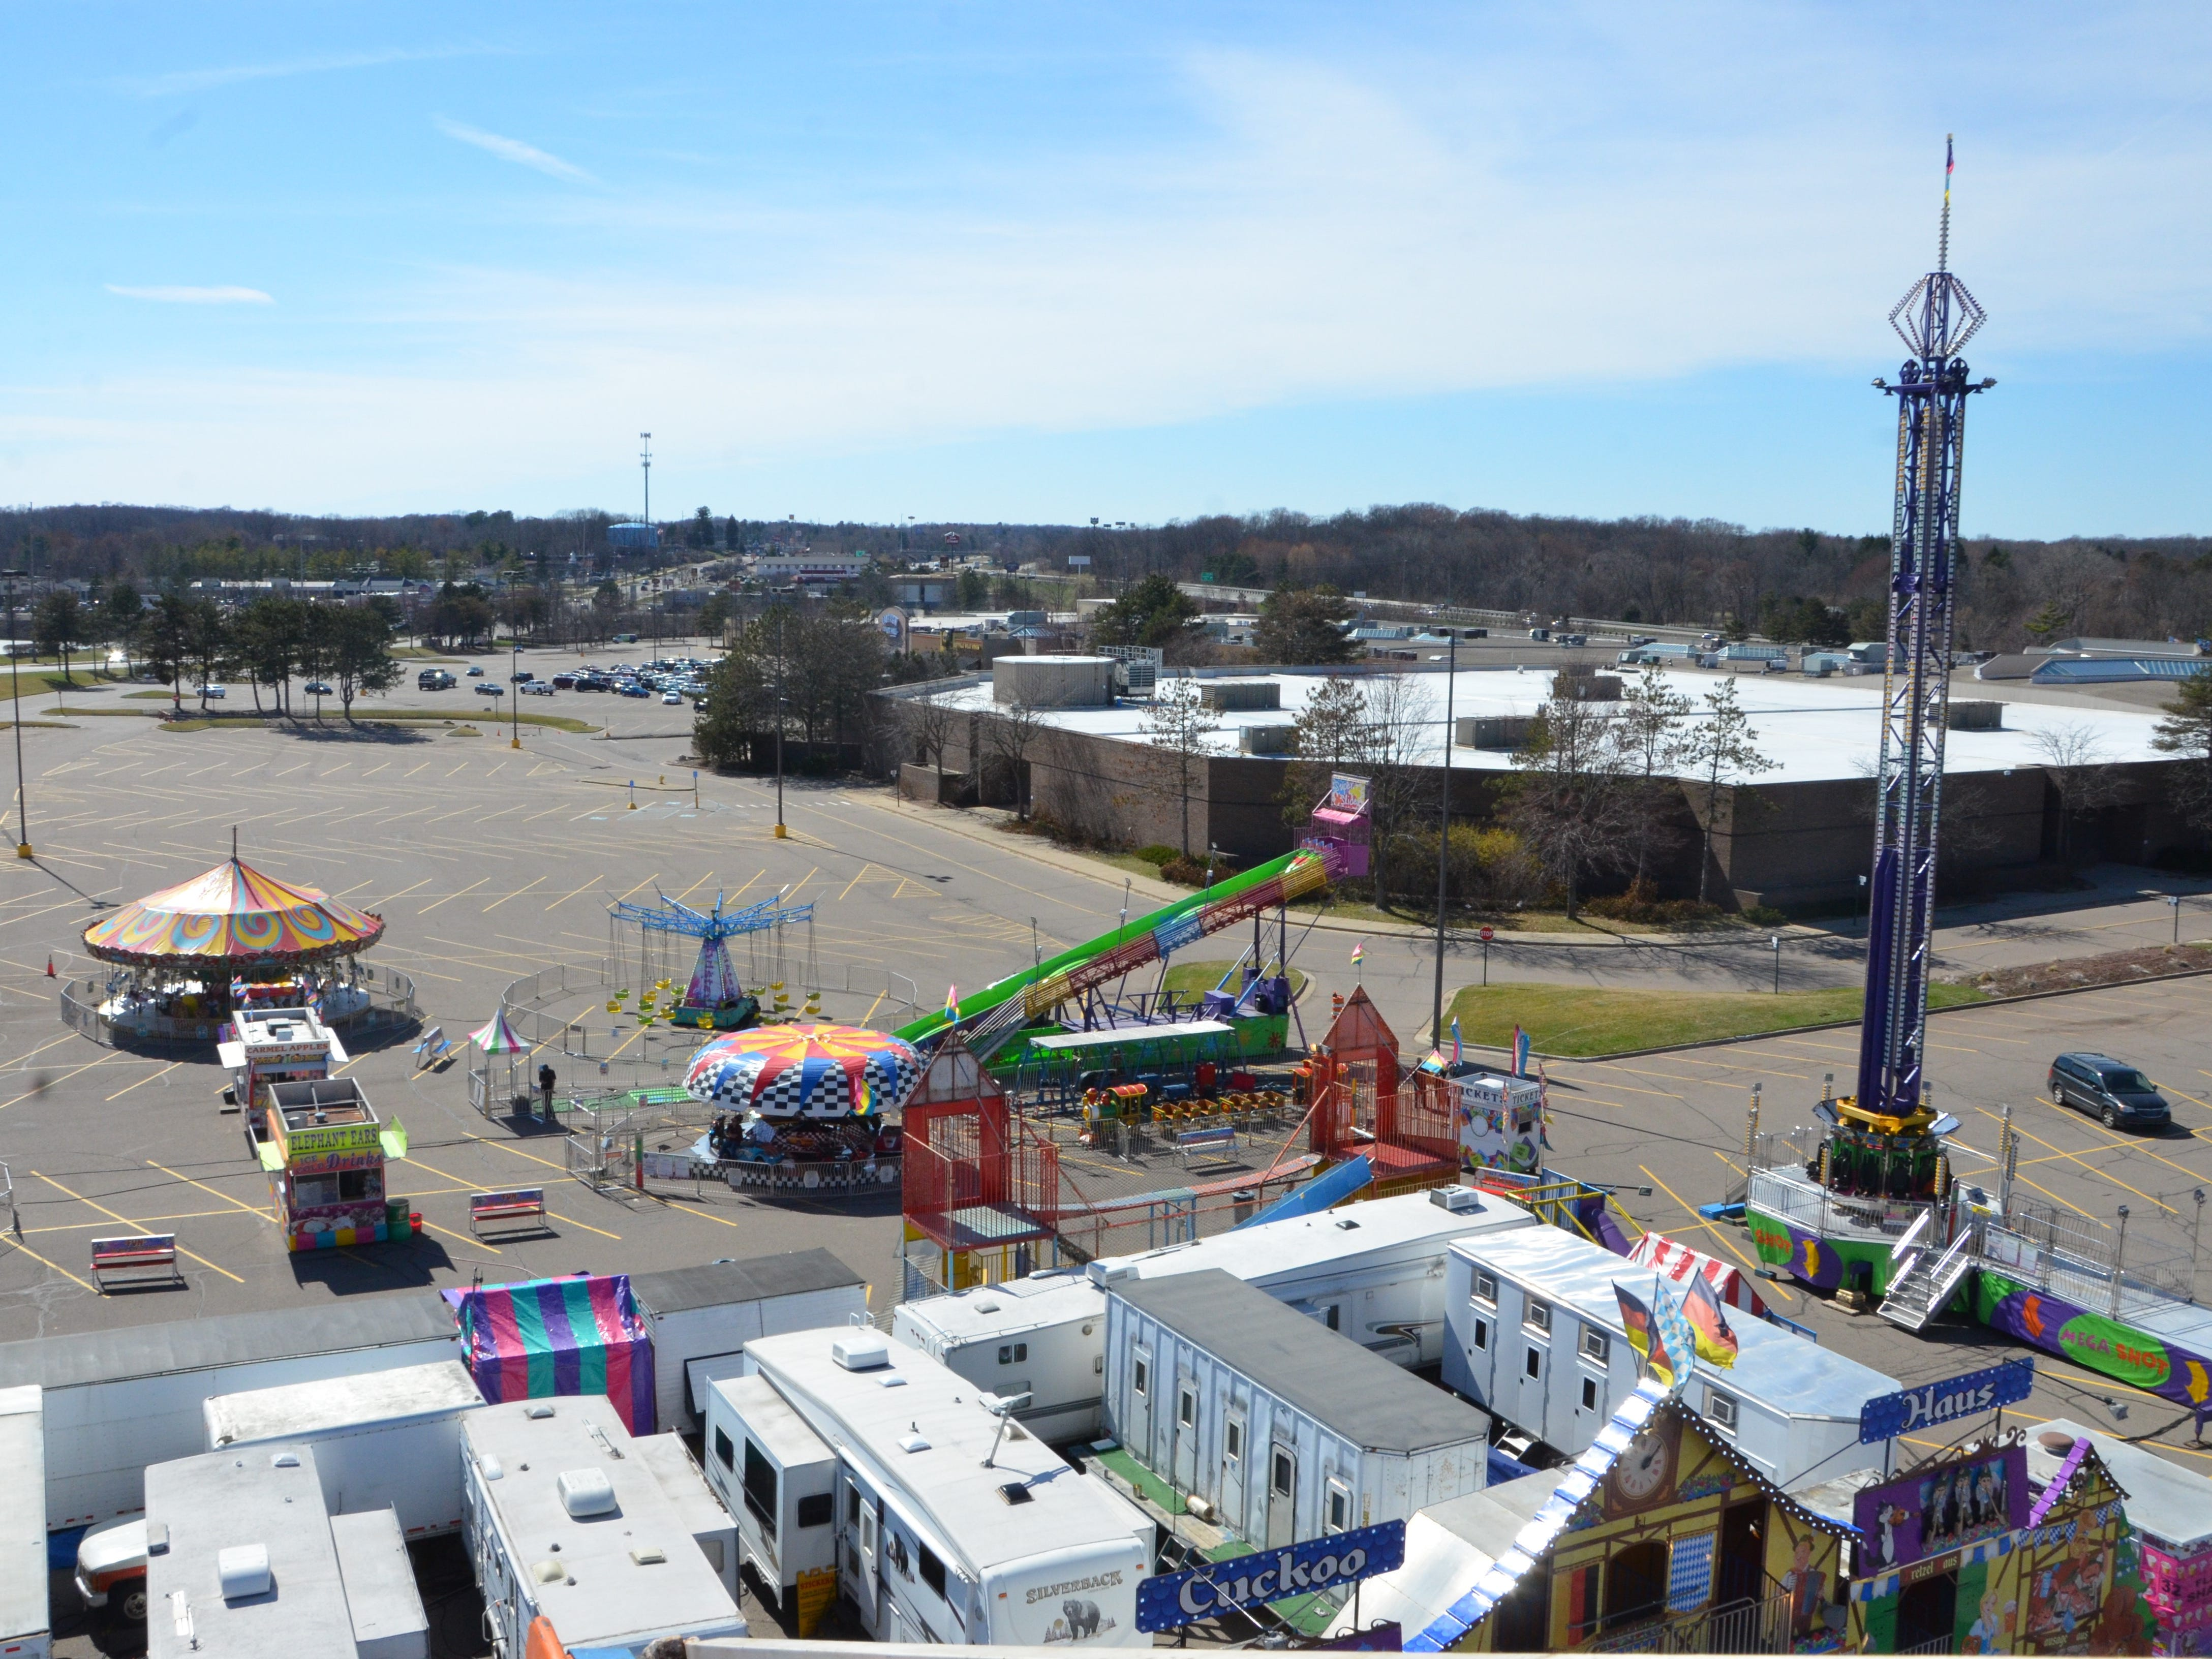 The Lakeview Square Mall parking lot will feature Family Fun Tyme Ammusements until April 20.